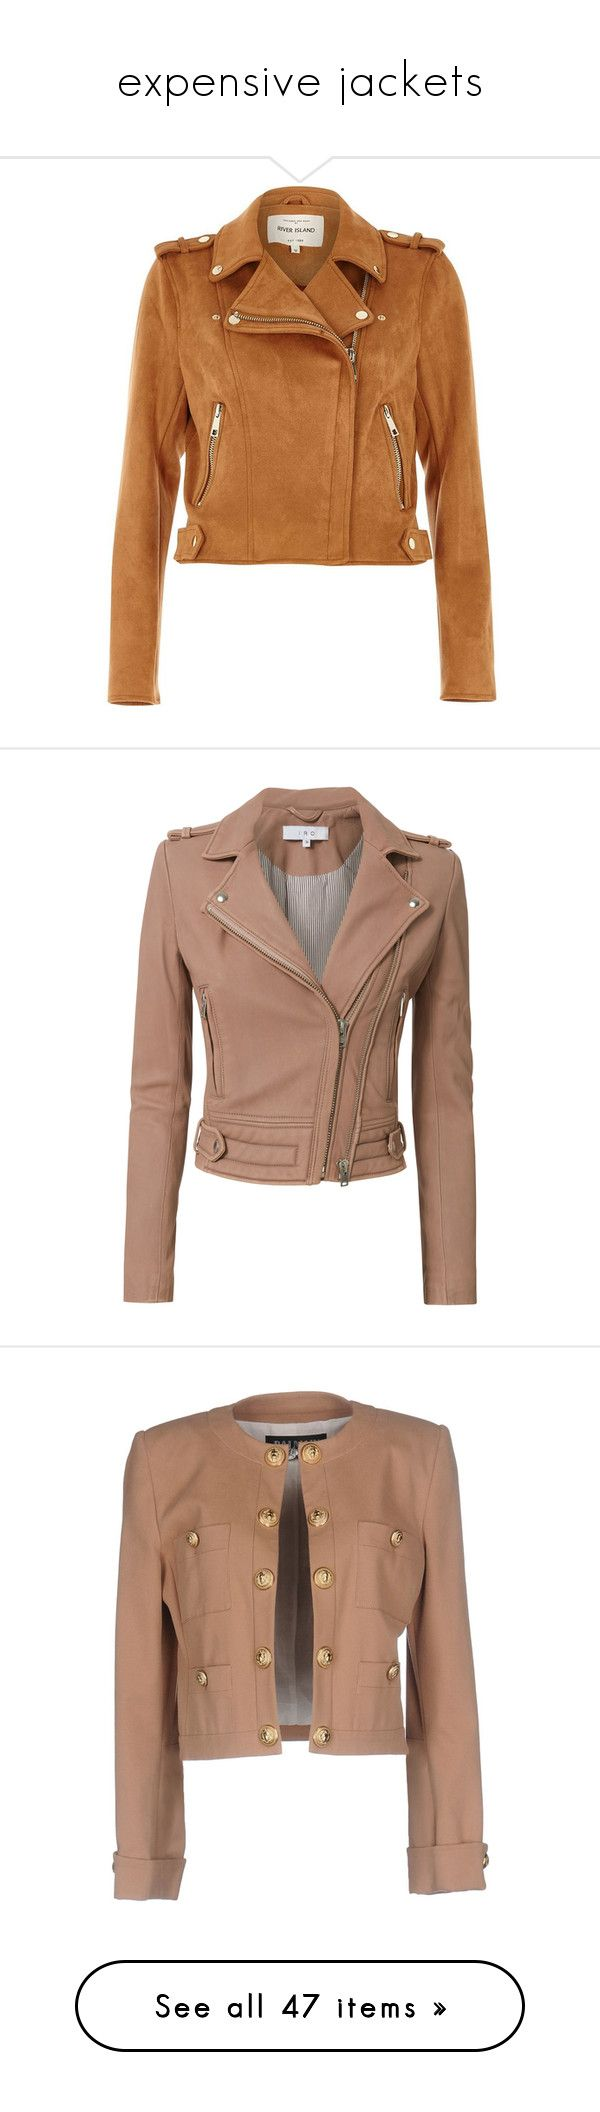 """""""expensive jackets"""" by mrstomlinson974 on Polyvore featuring outerwear, jackets, river island, tops, coats / jackets, tan, women, moto biker jacket, tan biker jacket and biker jacket"""